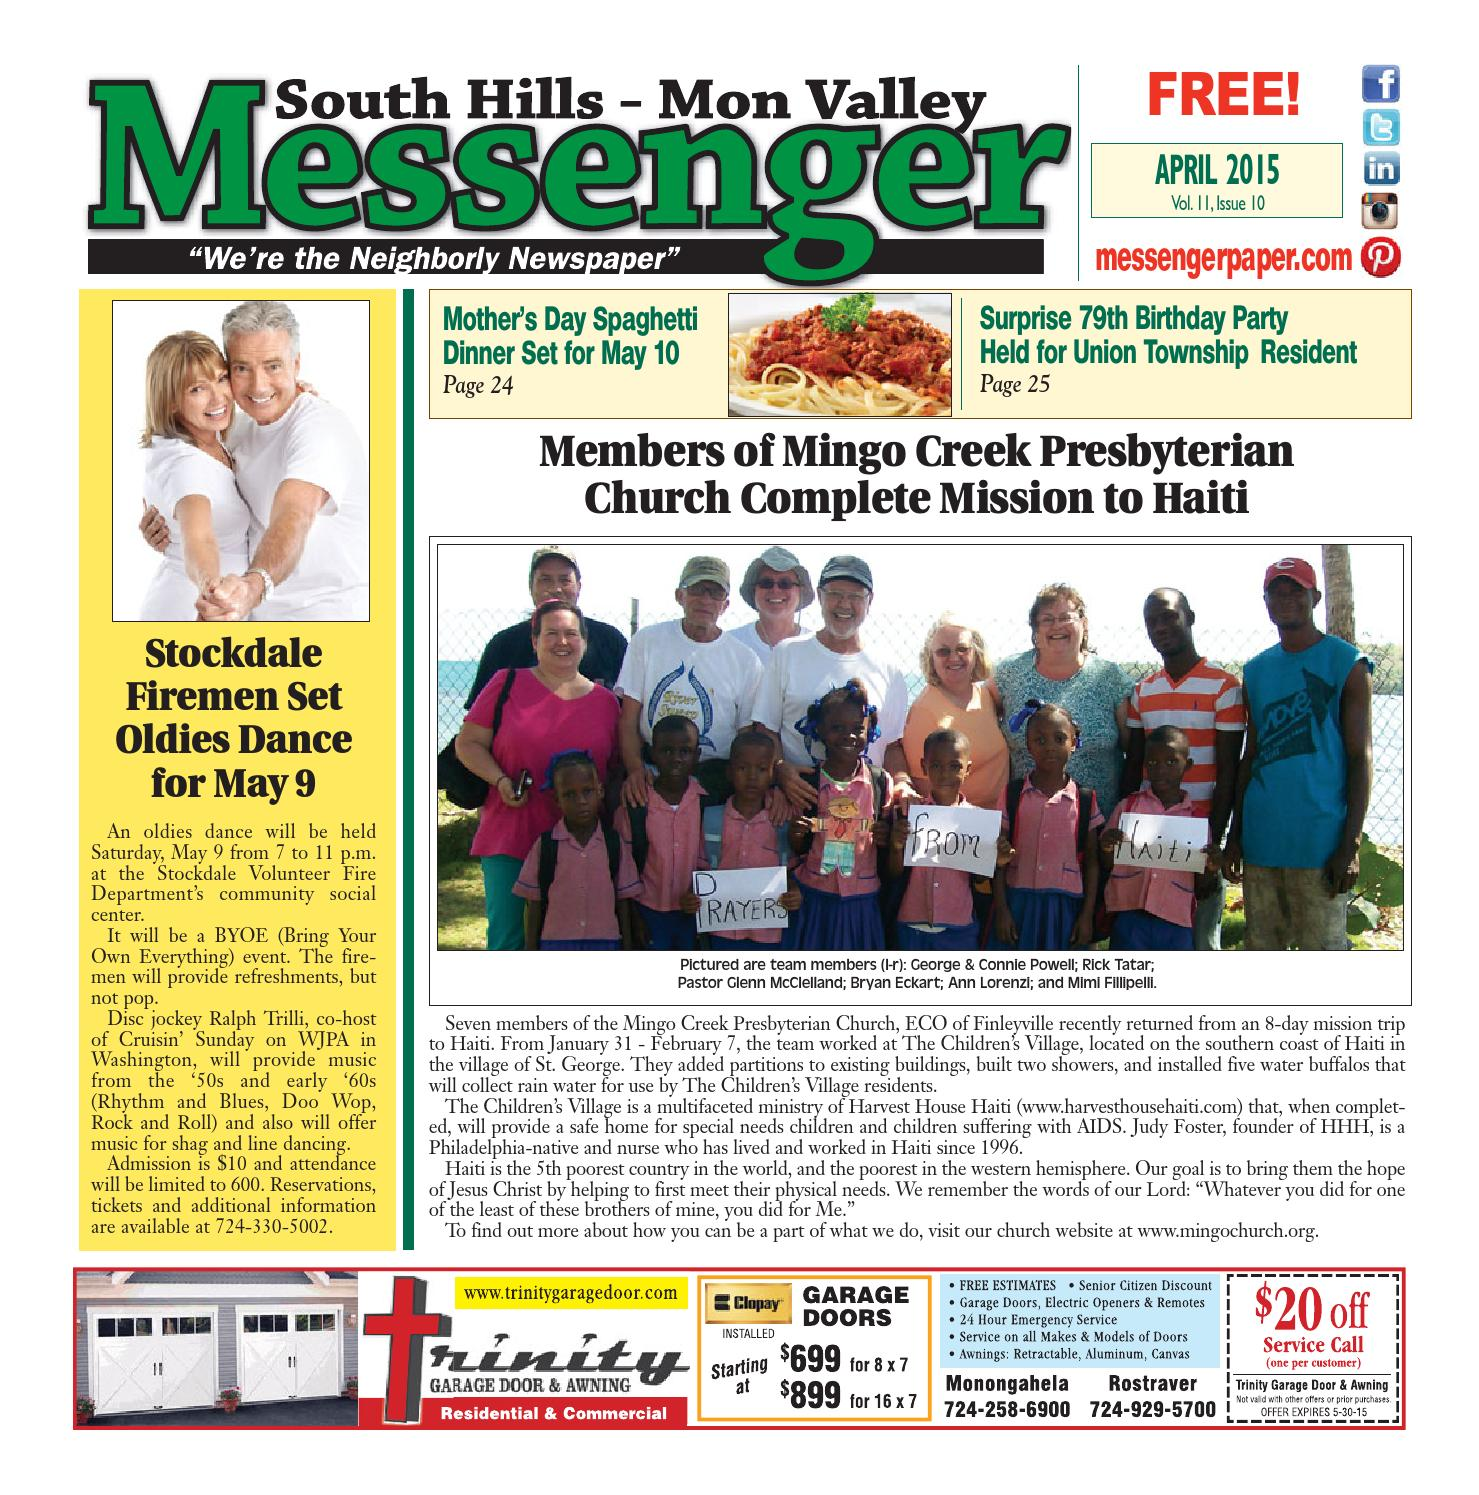 South hills mon valley messenger by south hills mon valley messenger south hills mon valley messenger by south hills mon valley messenger issuu fandeluxe Image collections